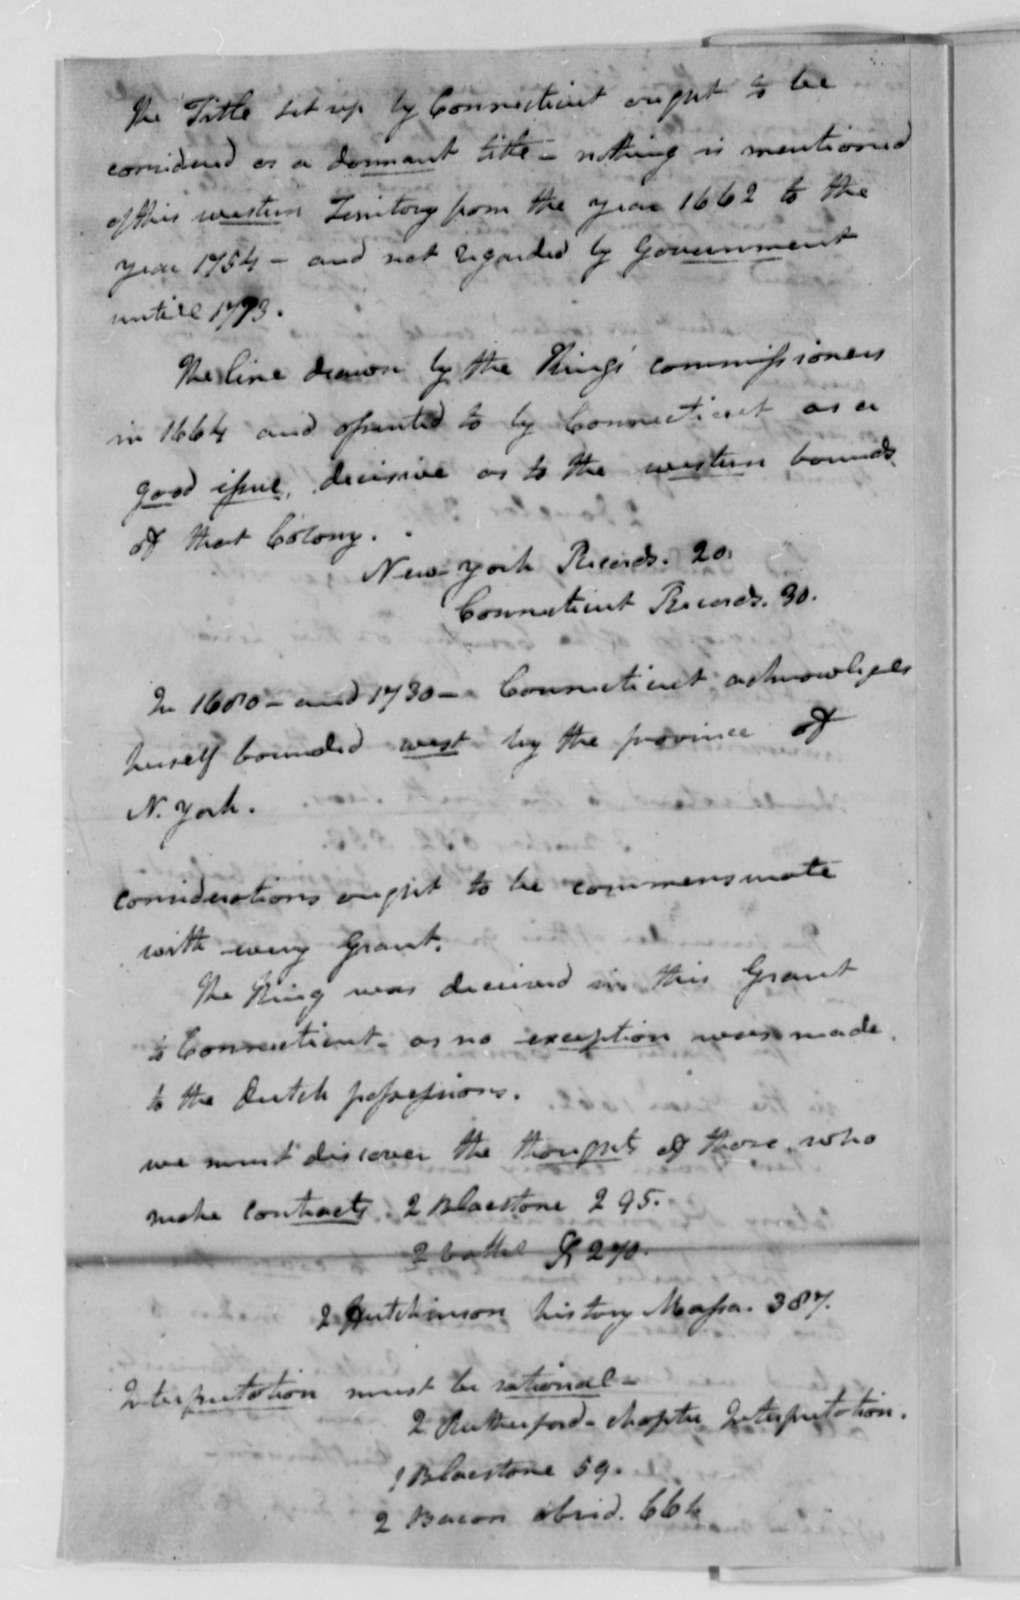 James Wilson and William Samuel Johnson, December 14-23, 1782, Arguments Before Court of Commissioners on Connecticut, Pennsylvania Territorial Dispute